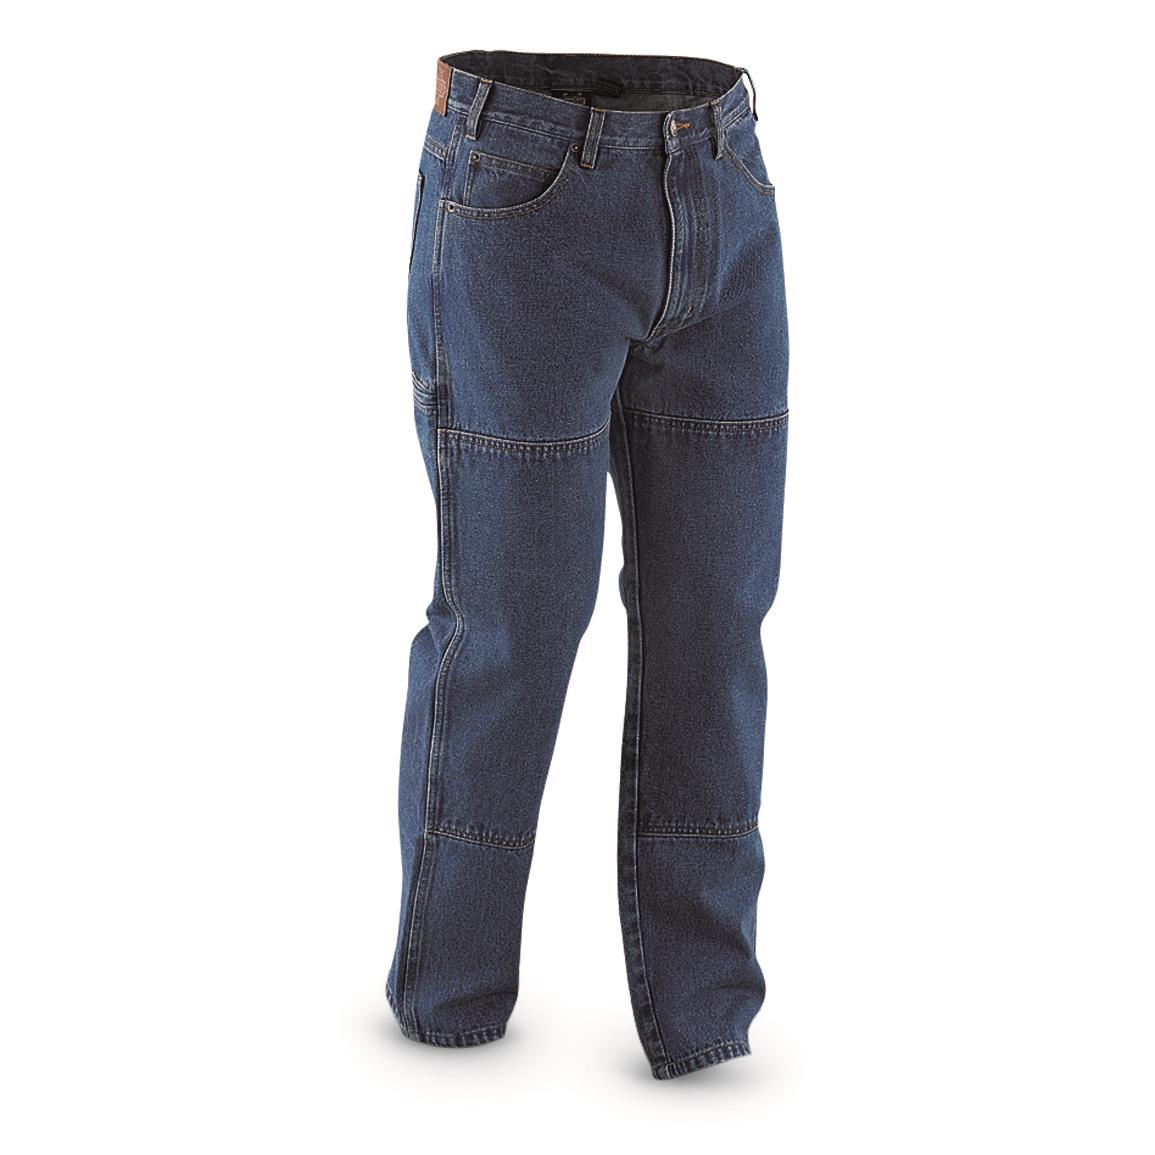 Guide Gear Men's Utility Jeans, Stonewash; Double-layer leg panels for rugged strength